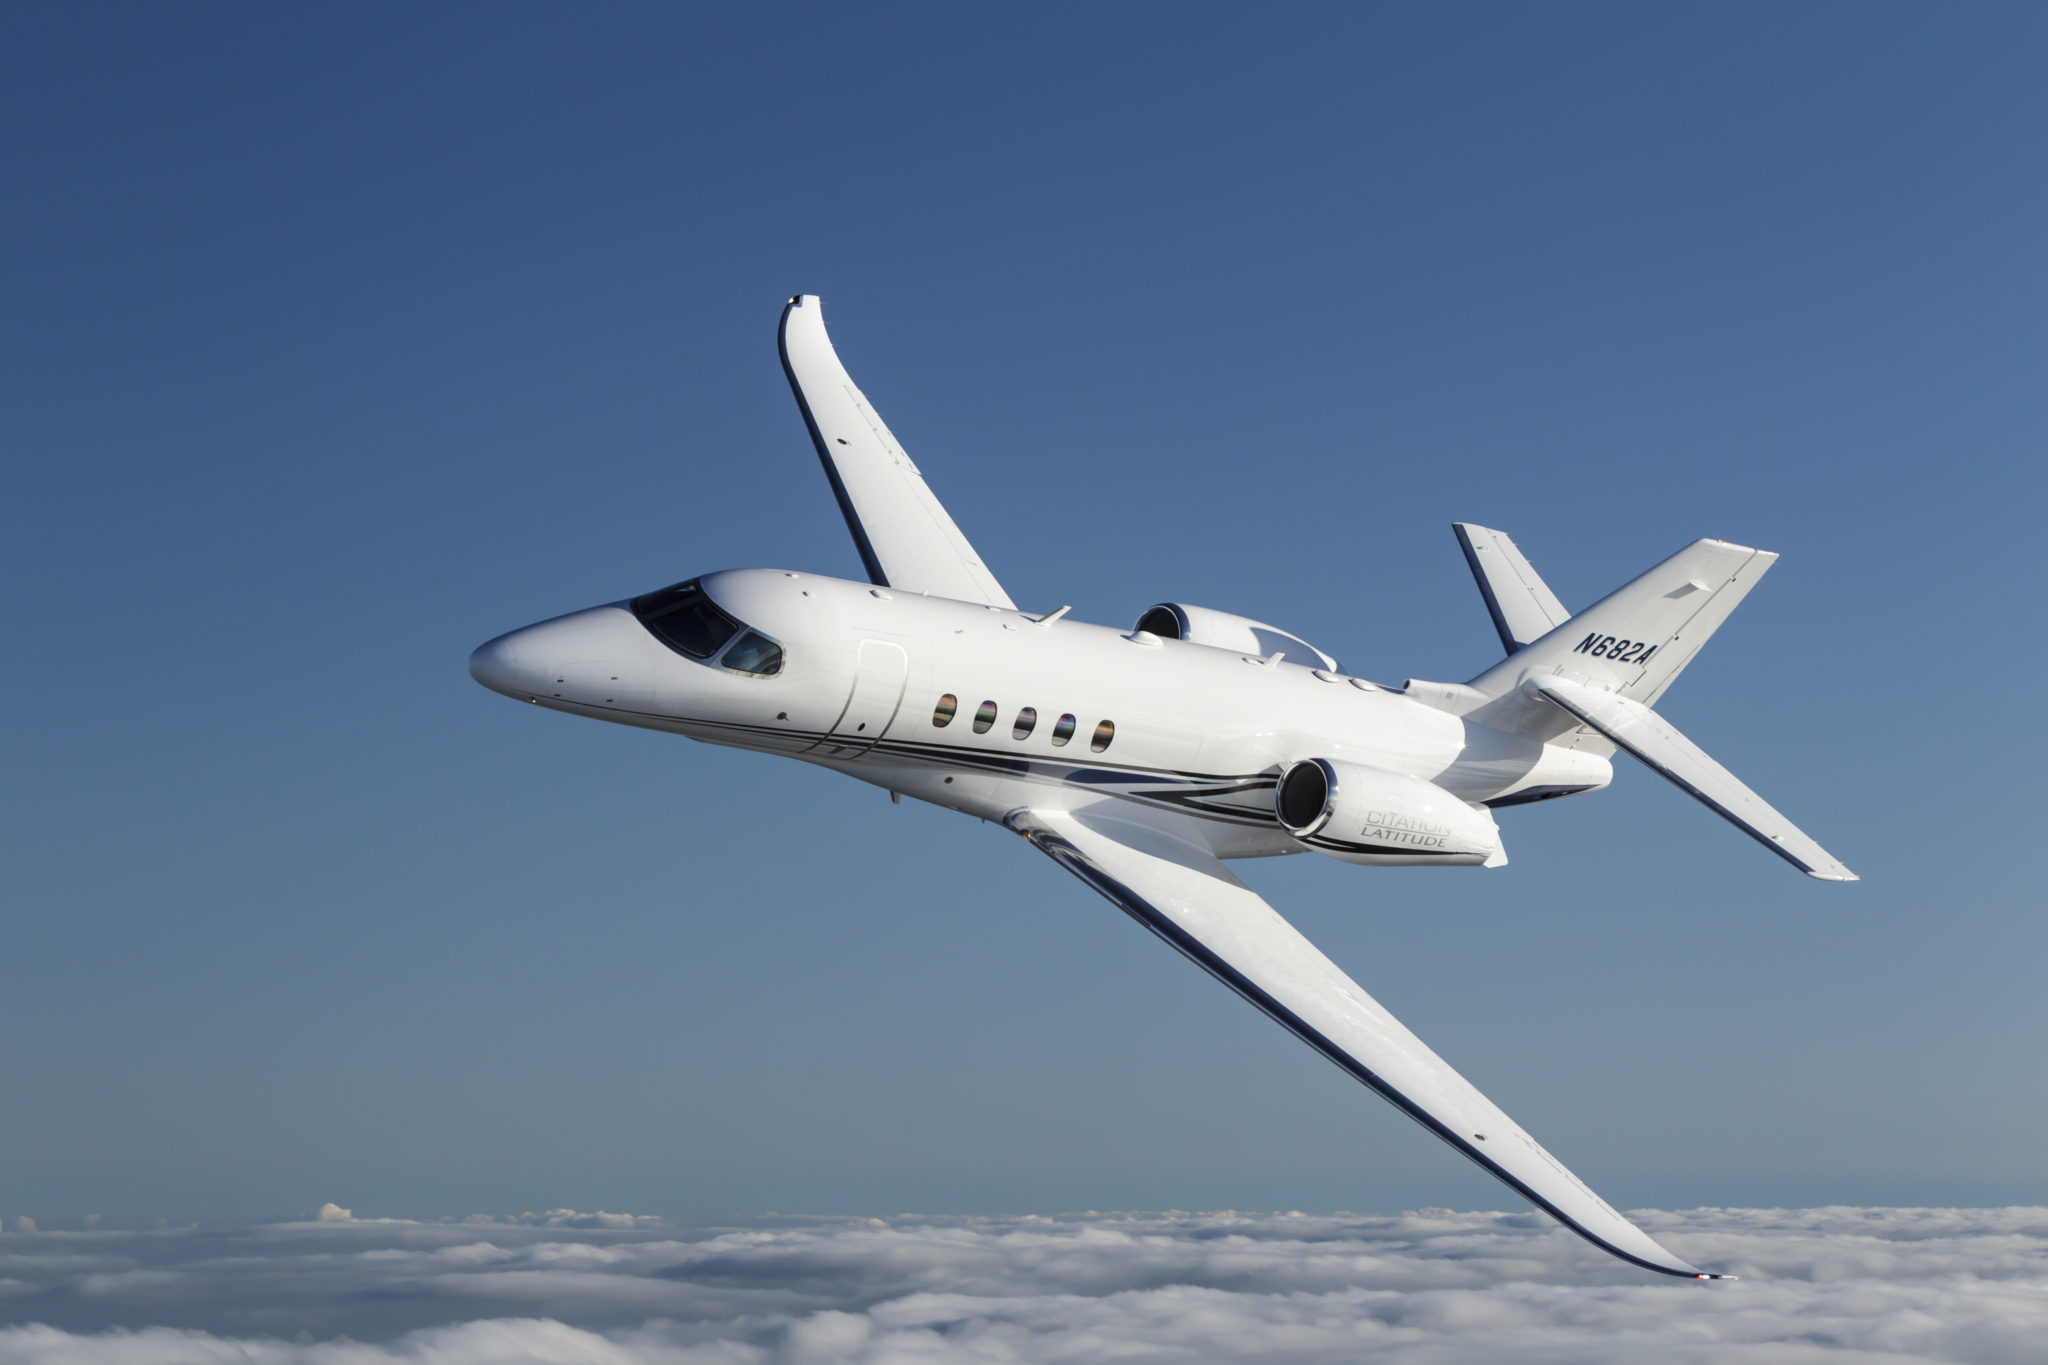 Citation Latitude Jet Exterior